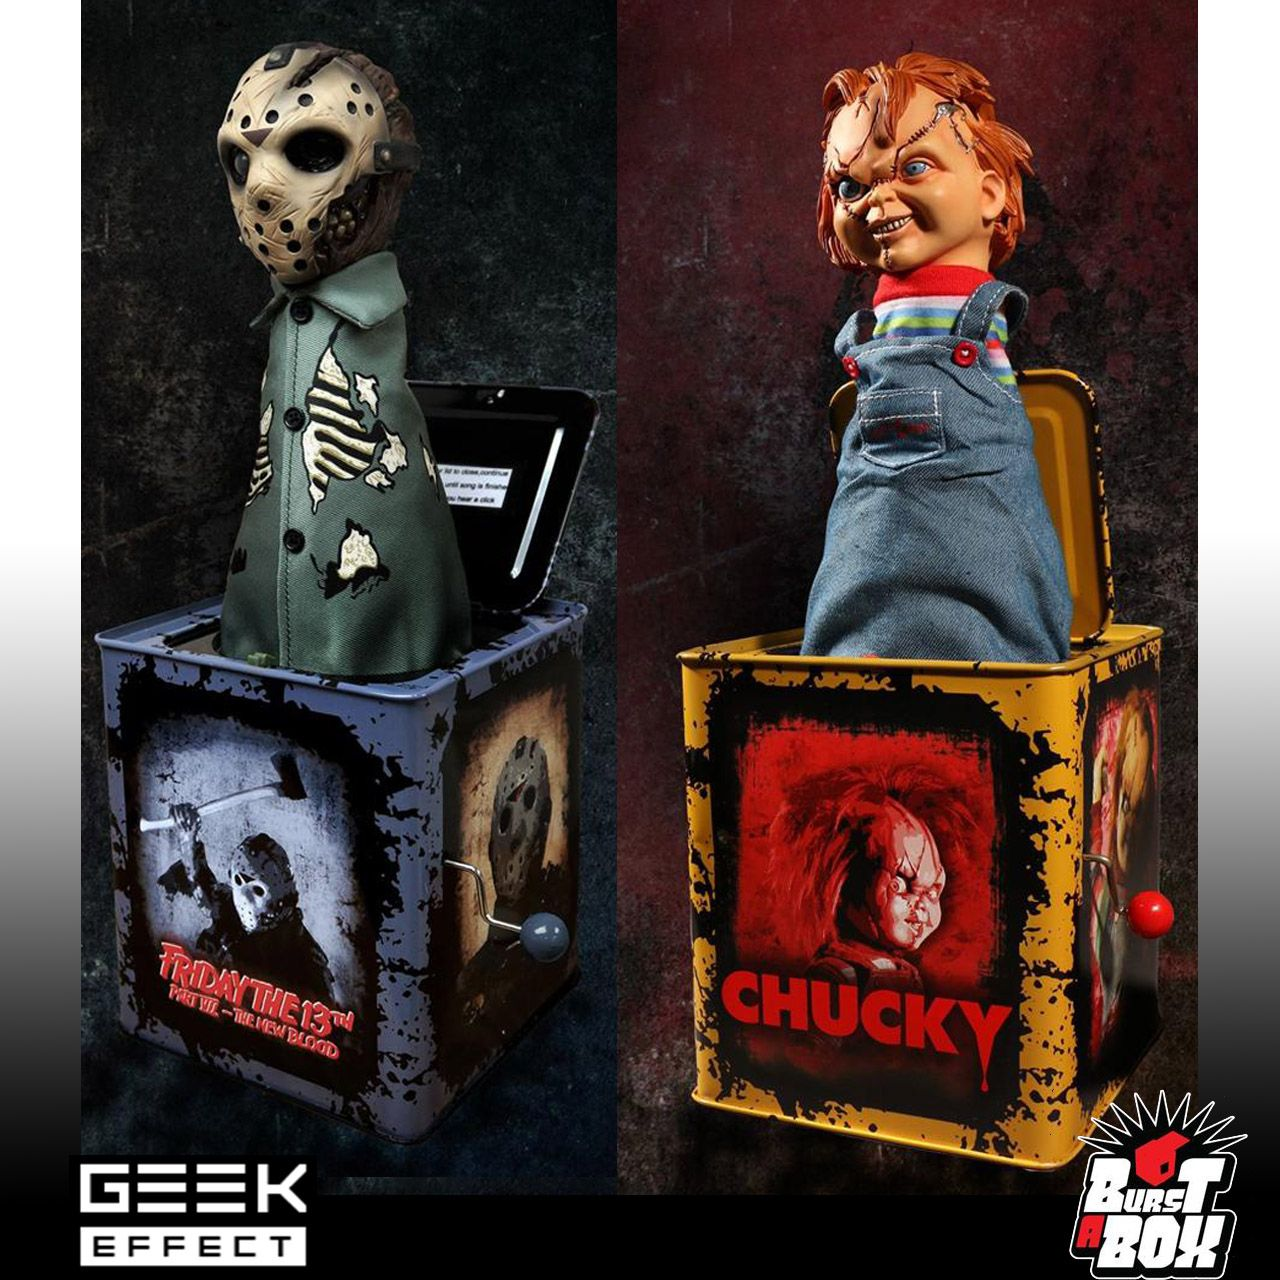 """Chucky Scarred Child/'s Play Burst-A-Box 14/"""" Action Figure Mezco Jack In The Box"""